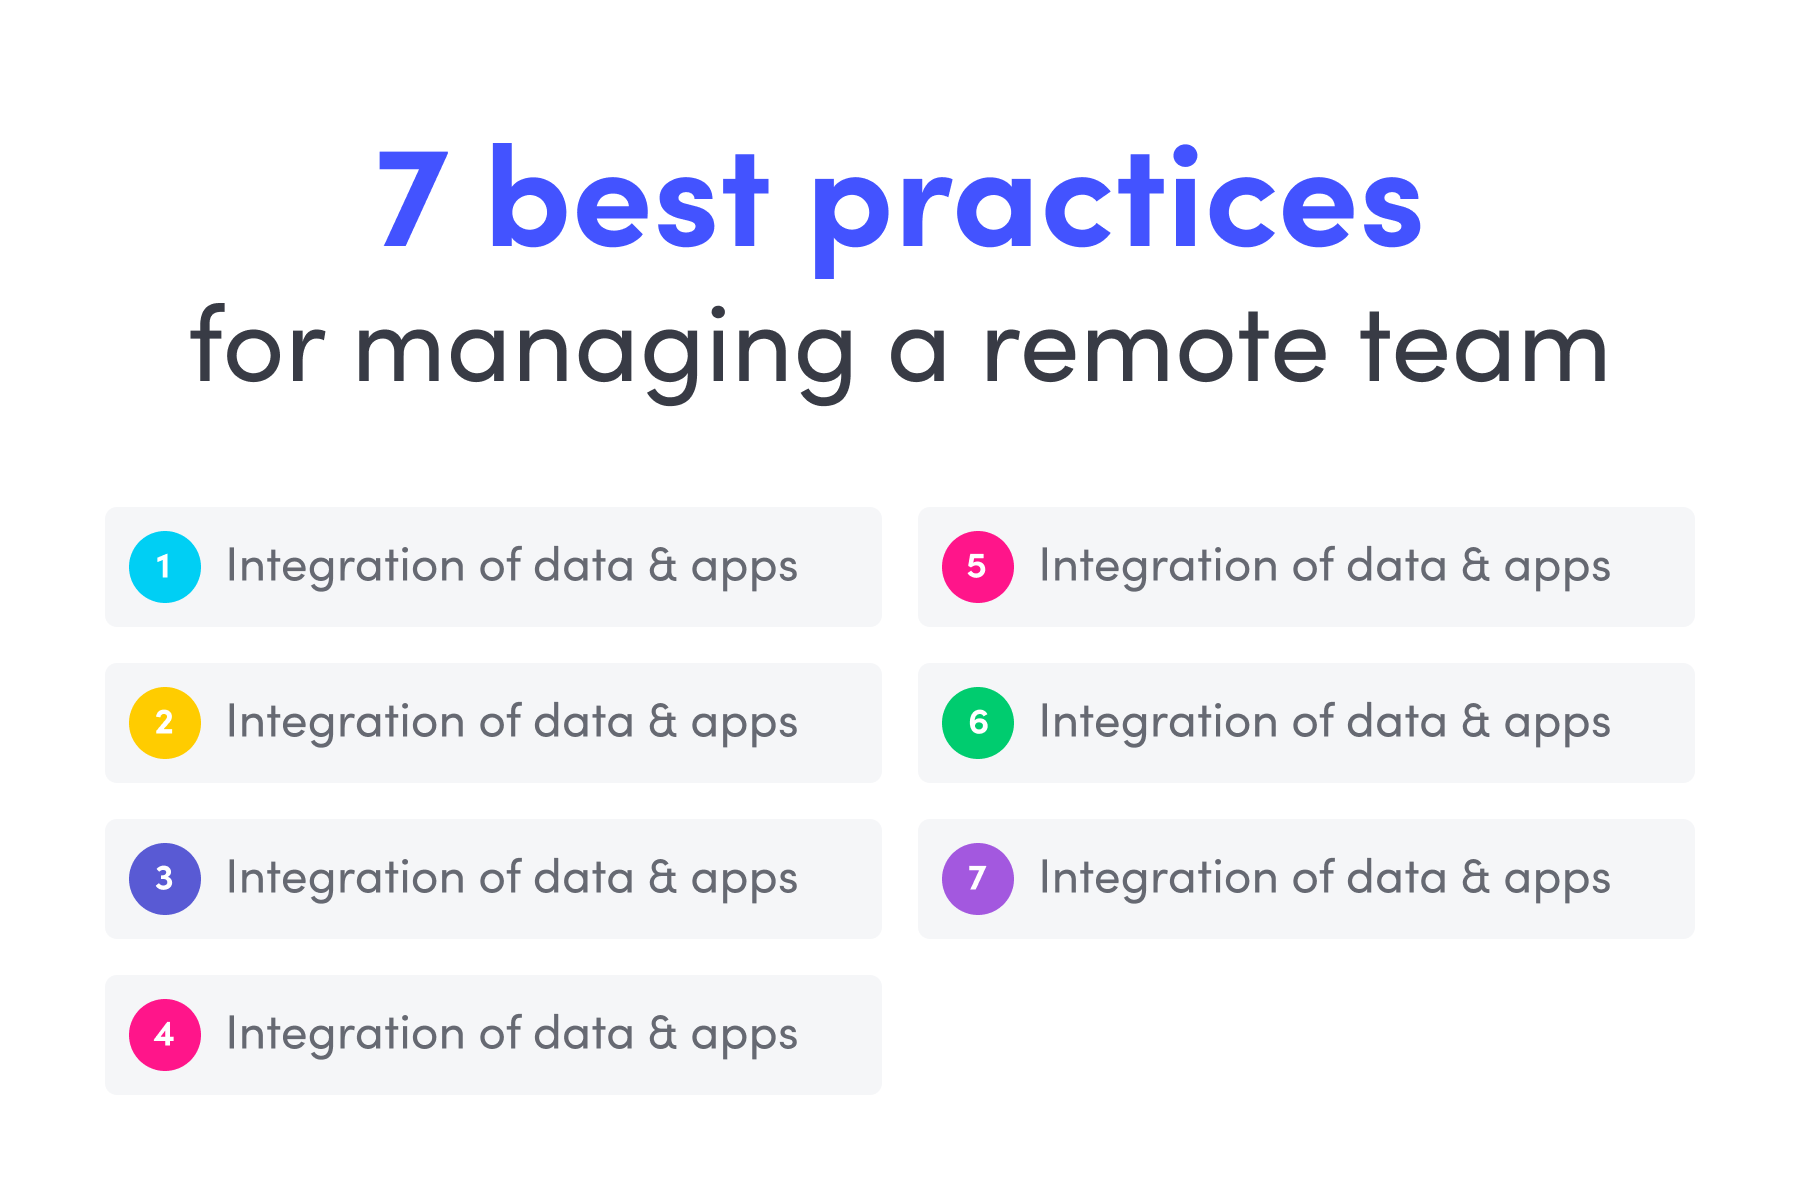 remote teams management - best practices